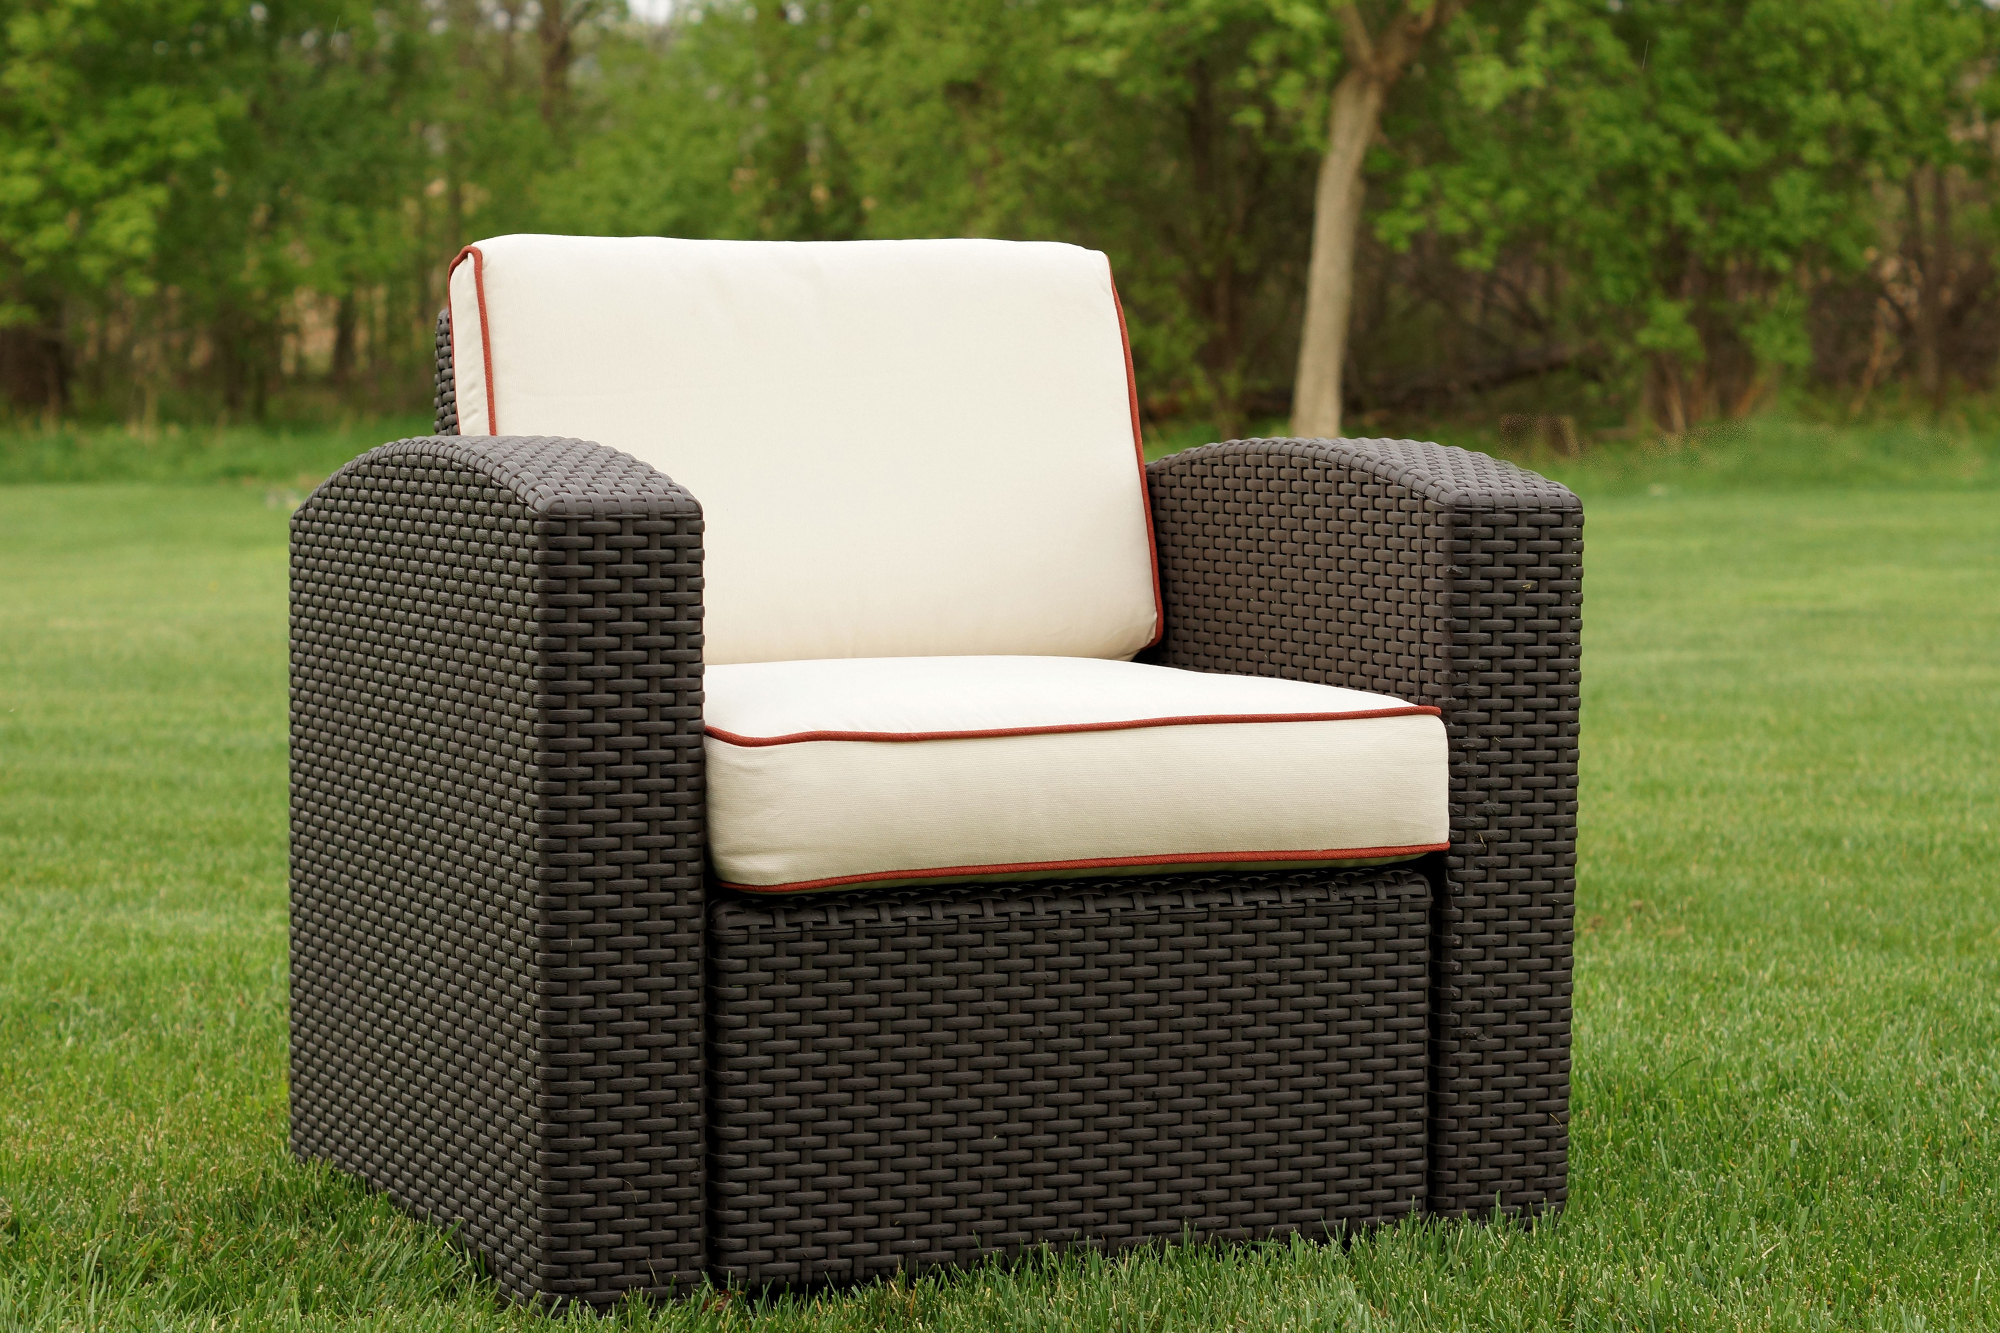 100 Molded Plastic Outdoor Chairs Rocking Chairs Patio